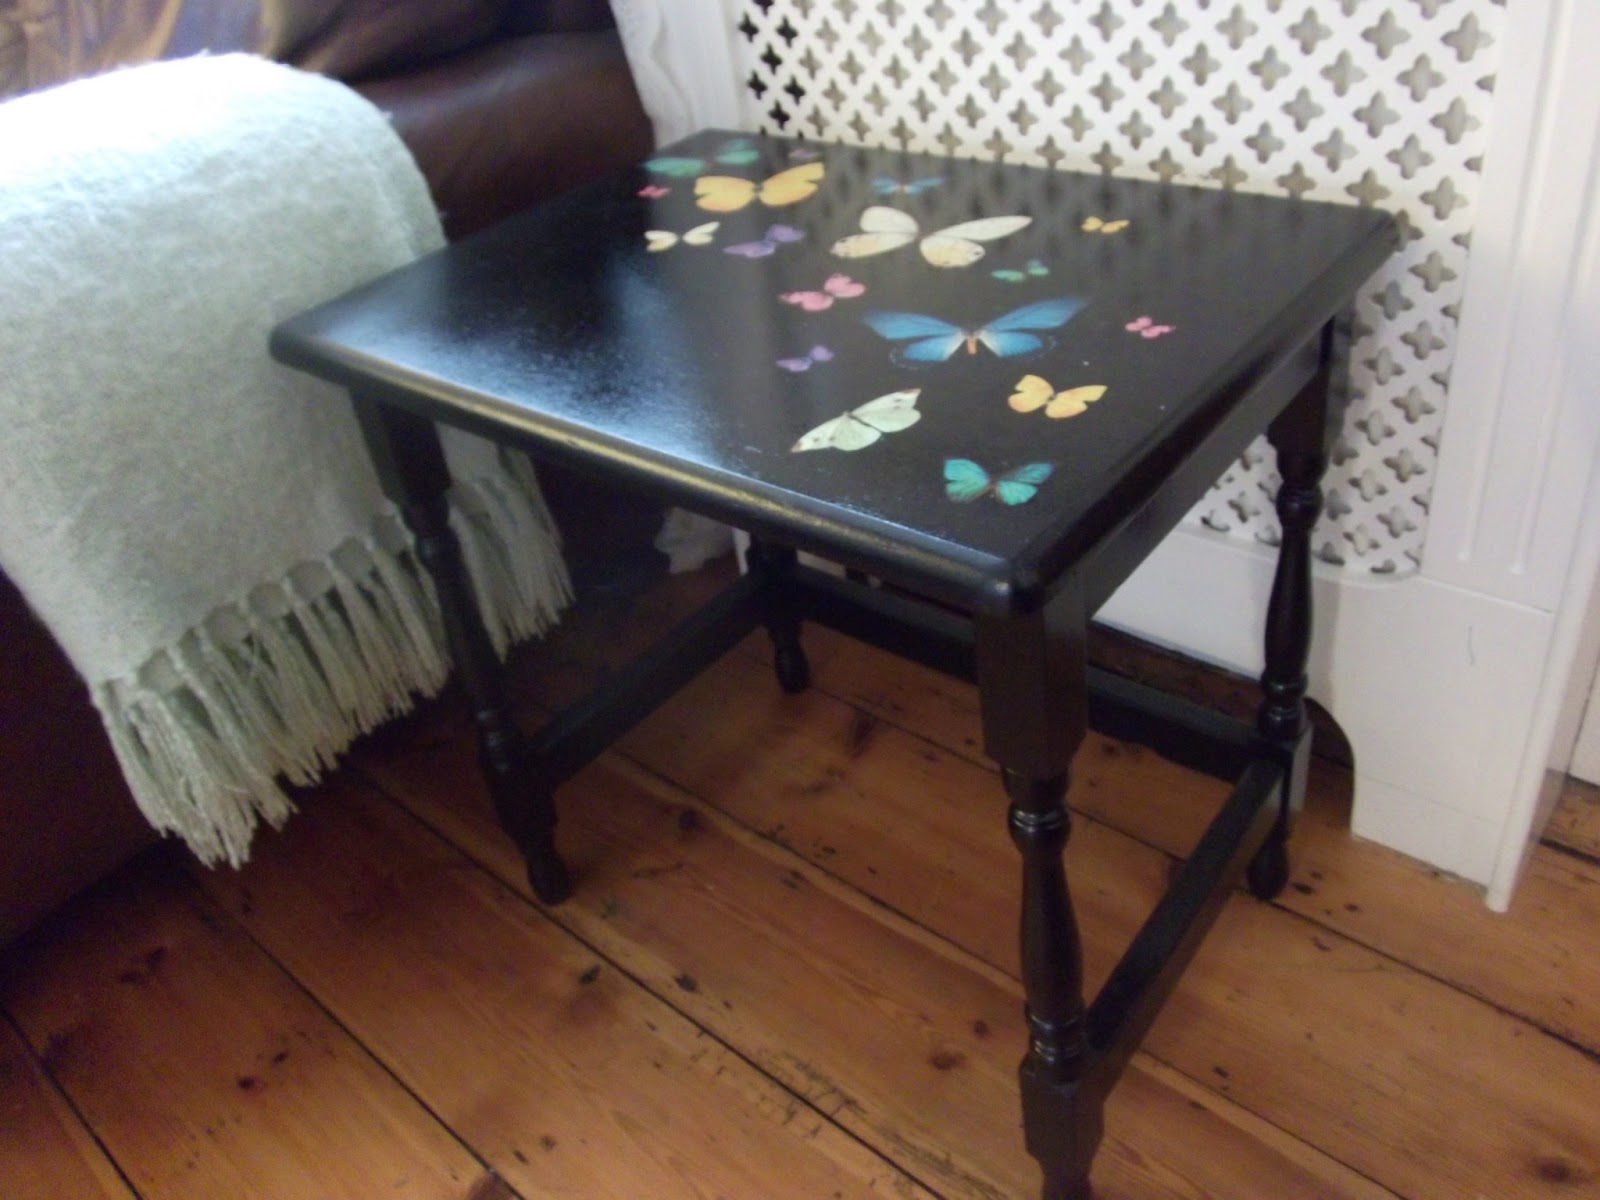 DIY Tutorial On How To Upcycle An Old Wooden Side Table On A Shoestring:  Using Spray Paint, Rub On Decals And Varnish.